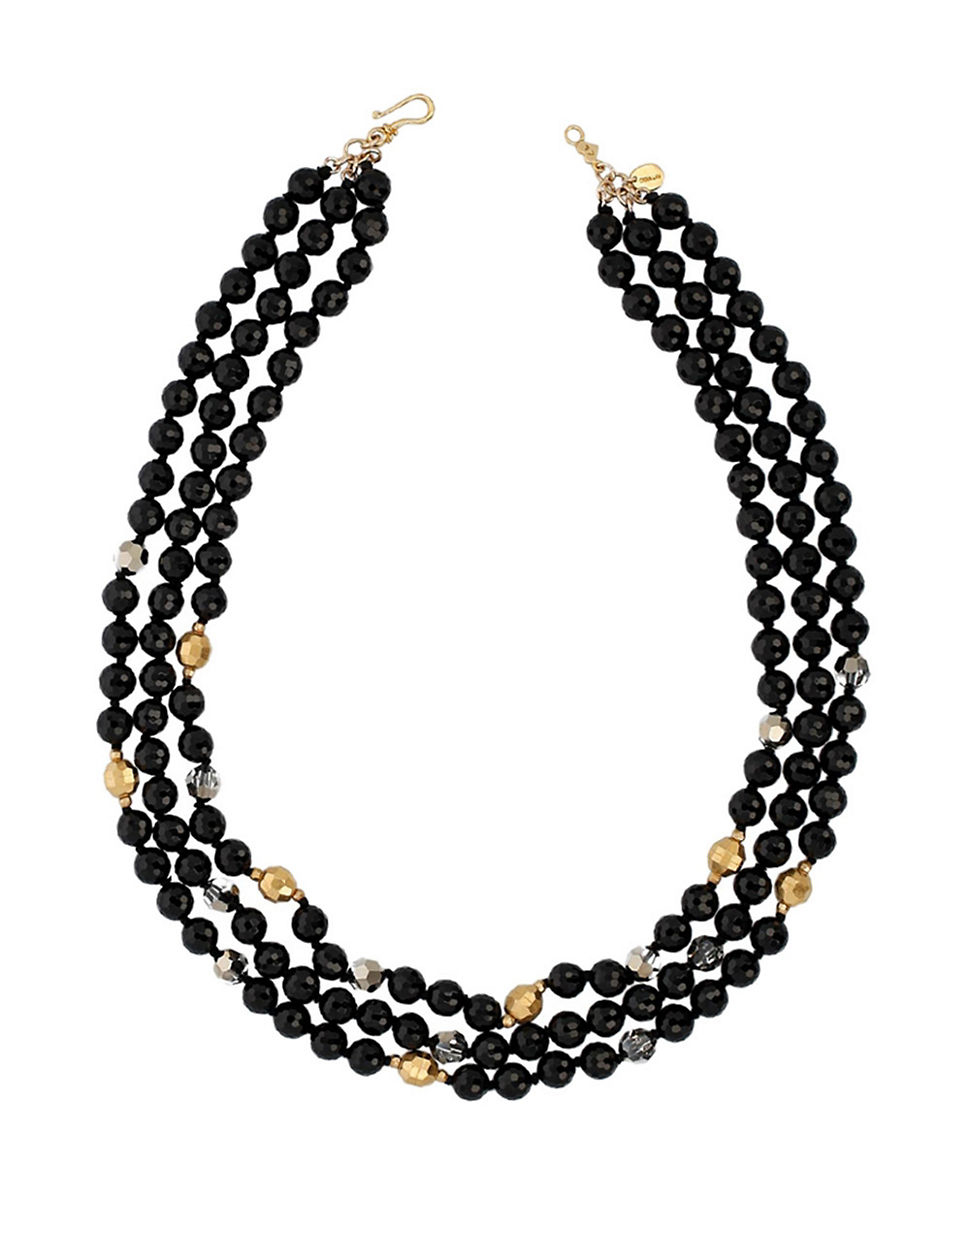 Chan Luu JEWELRY - Necklaces su YOOX.COM 2pvtmBxkQS